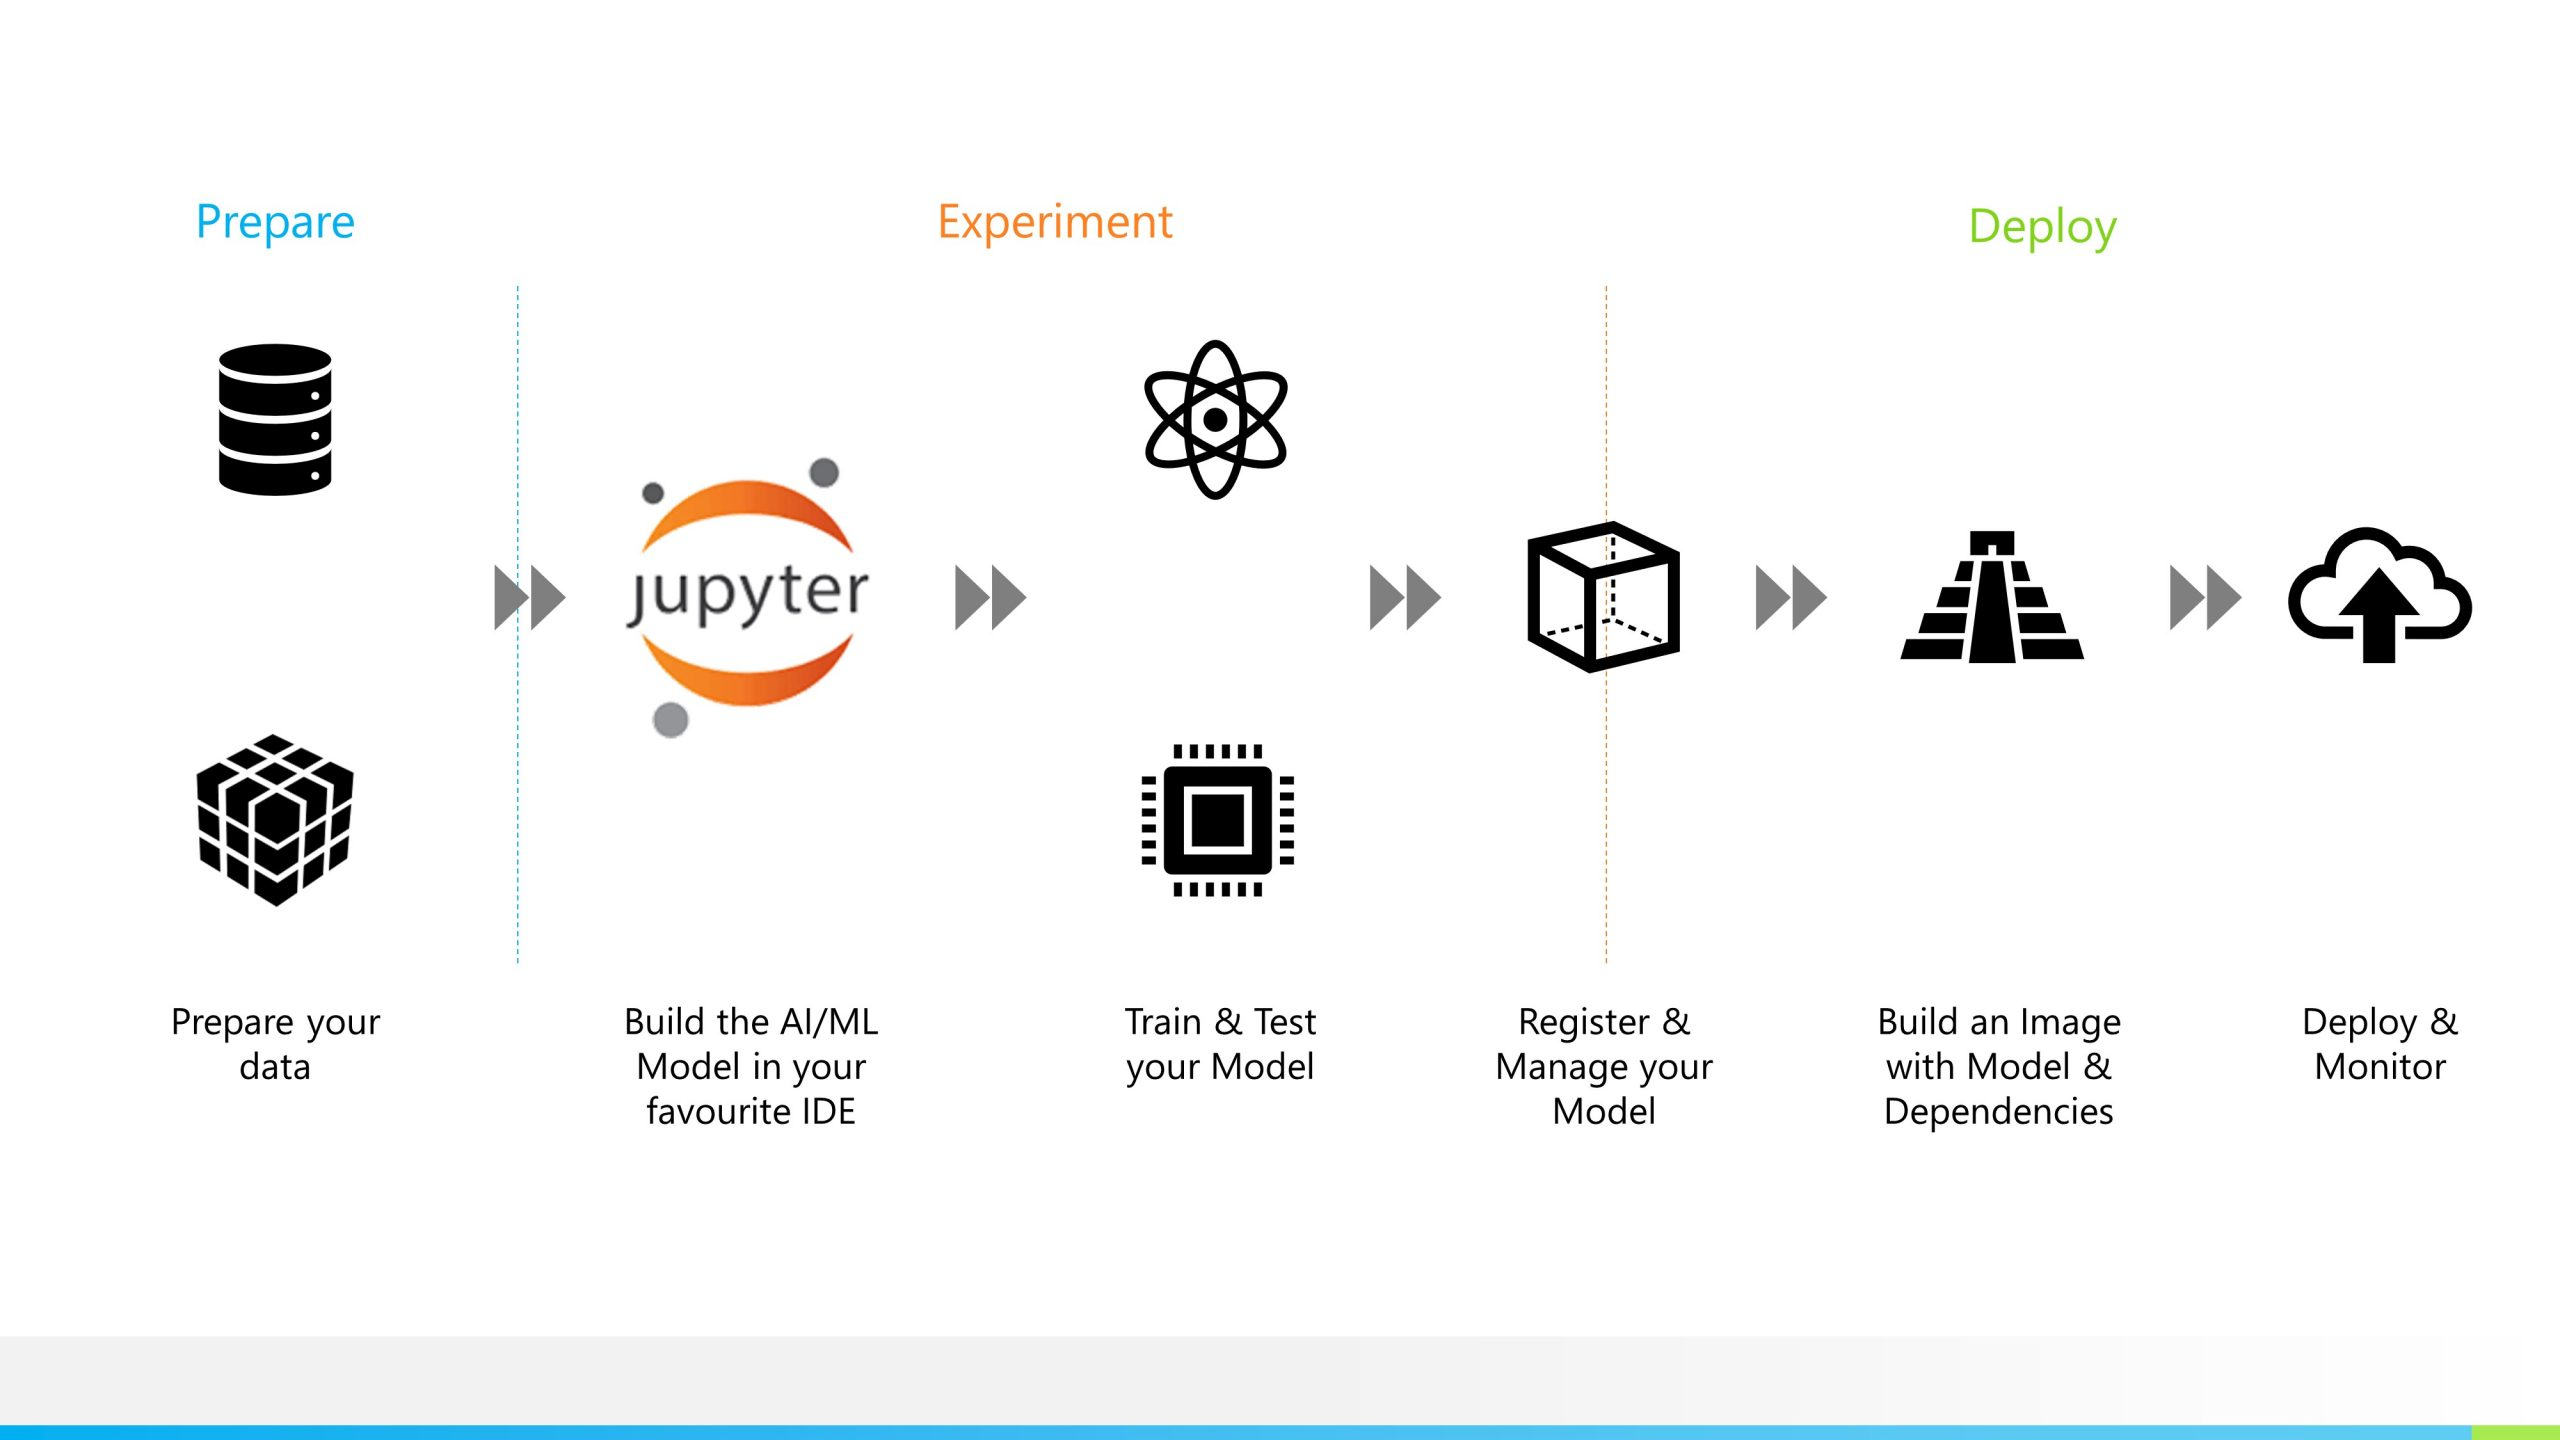 an-overview-of-pipeline-workflow-to-deploy-ai-models-with-docker-and-kubernetes